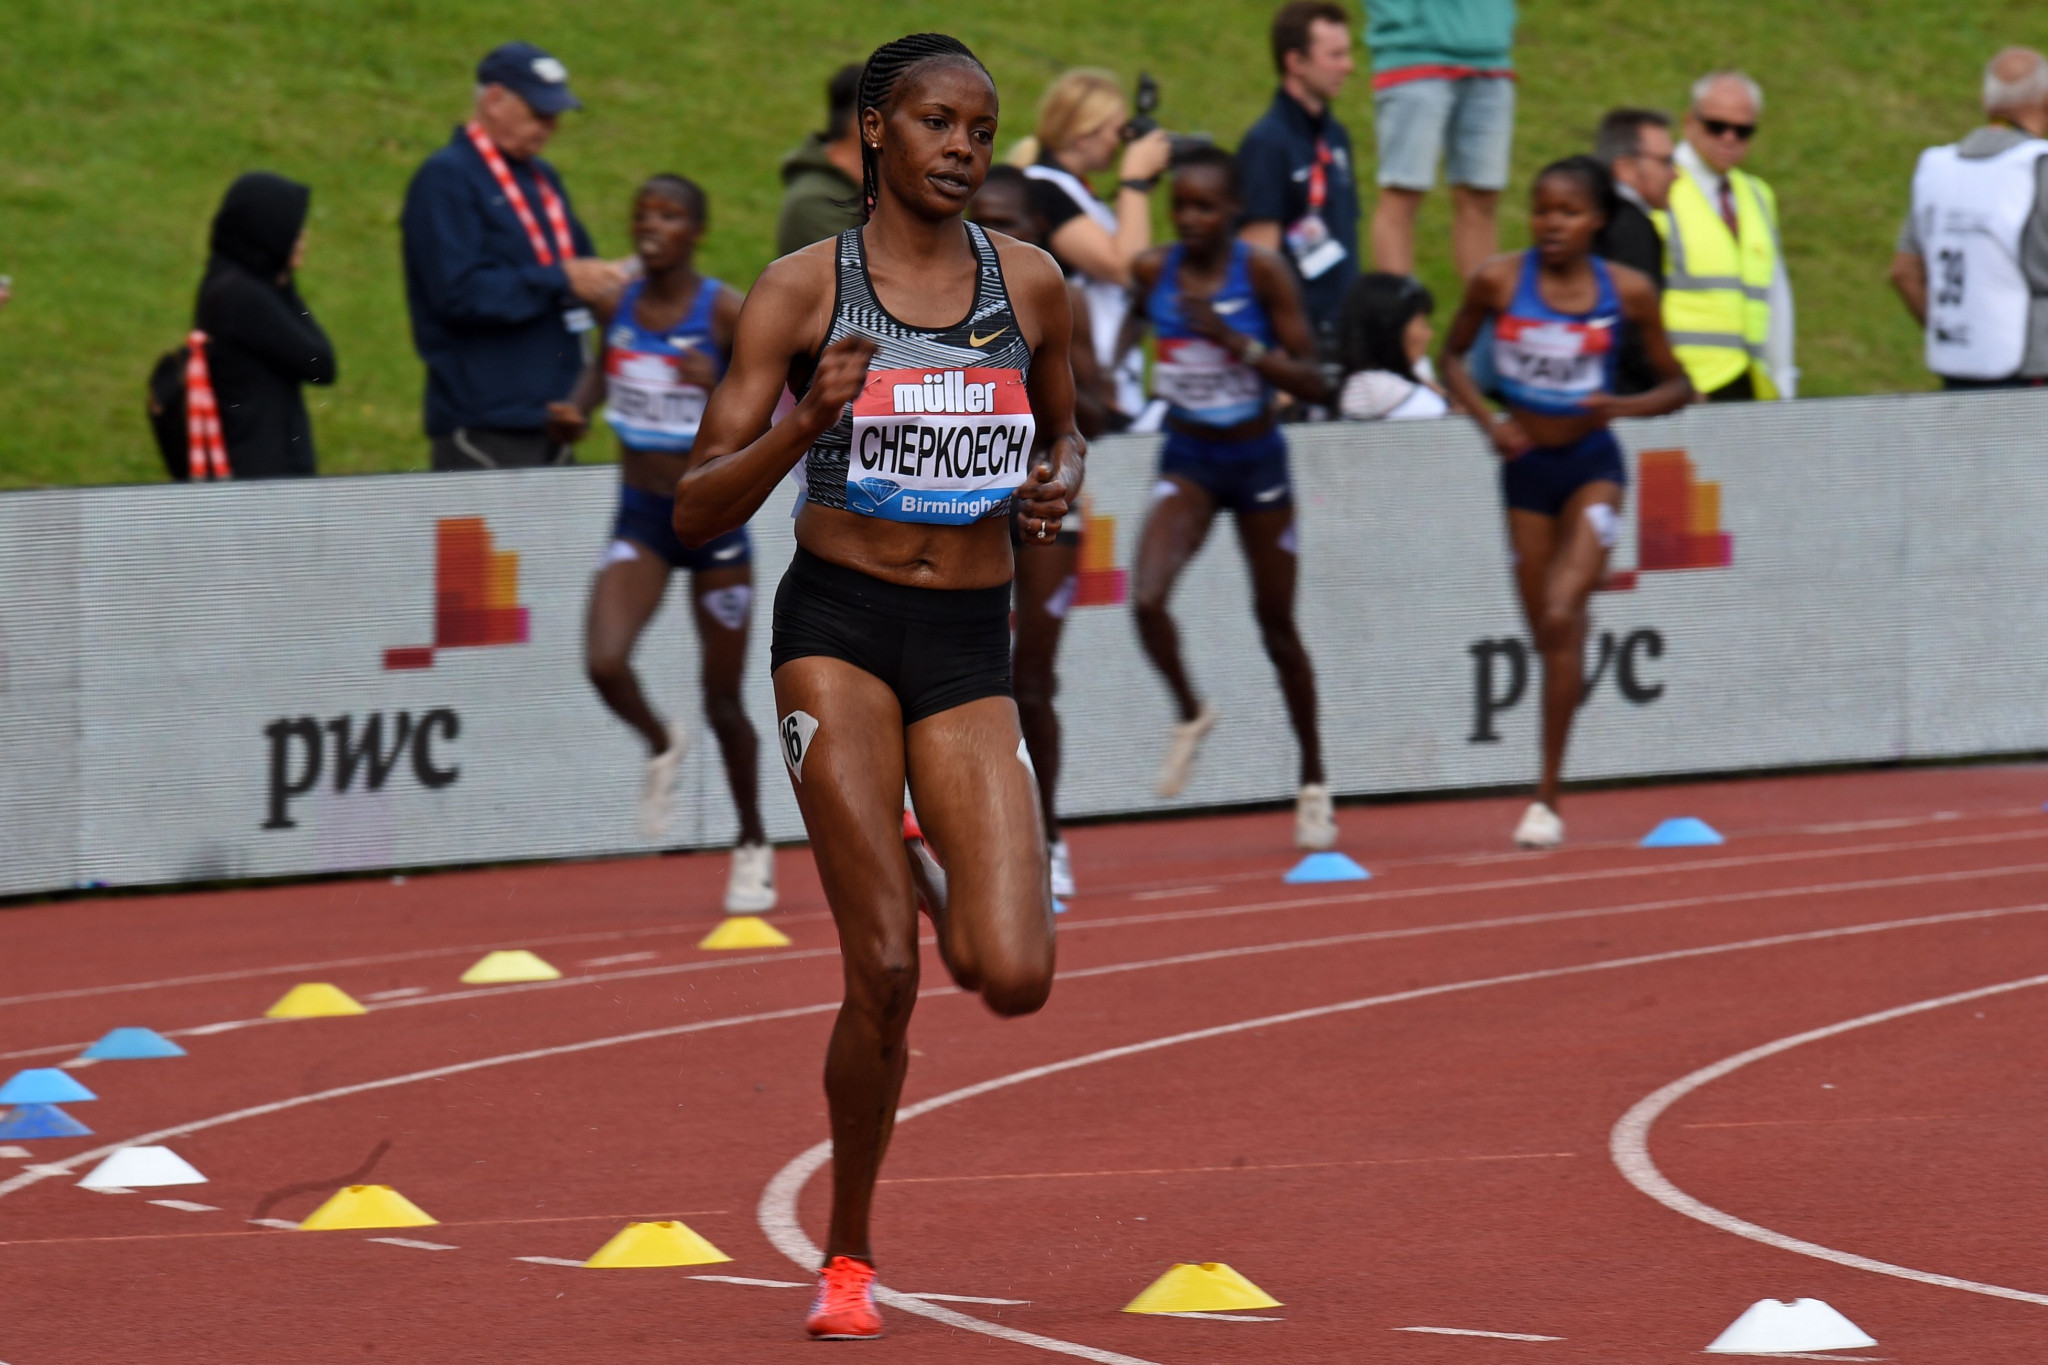 Beatrice Chepkoech, world record holder in the women's 3,000 metres steeplechase, will not race at the African Games ©Getty Images